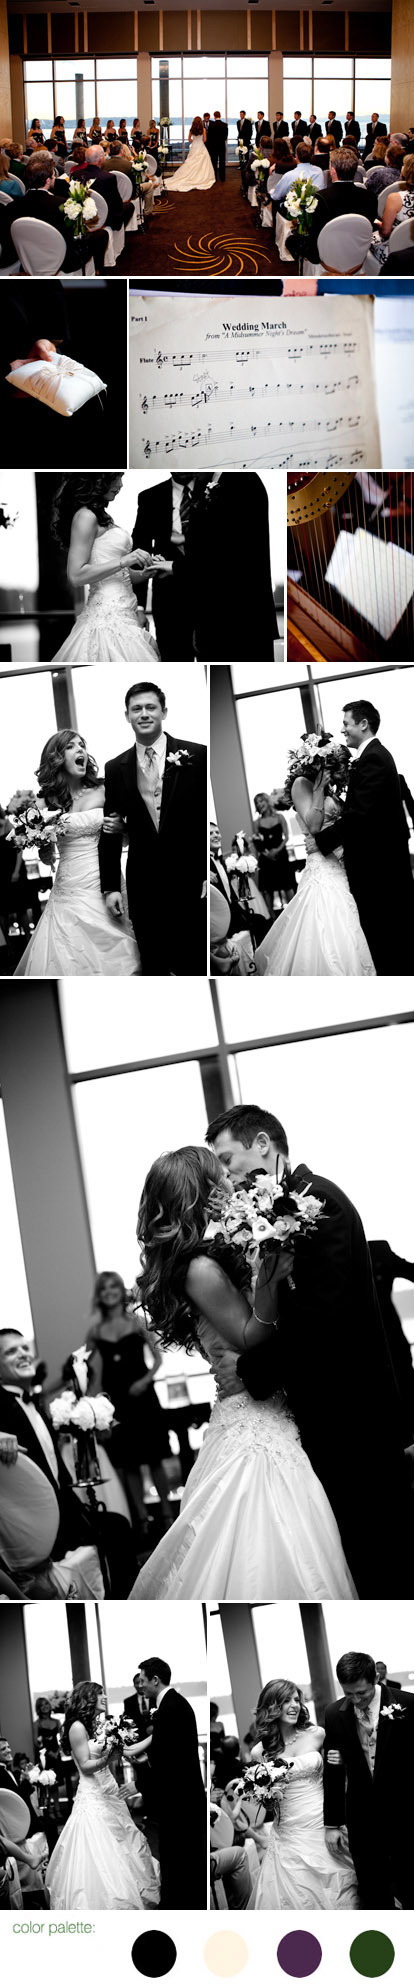 Modern Seattle wedding at the new Four Seasons Hotel, forgotten kiss during the ceremony, images by La Vie Photography